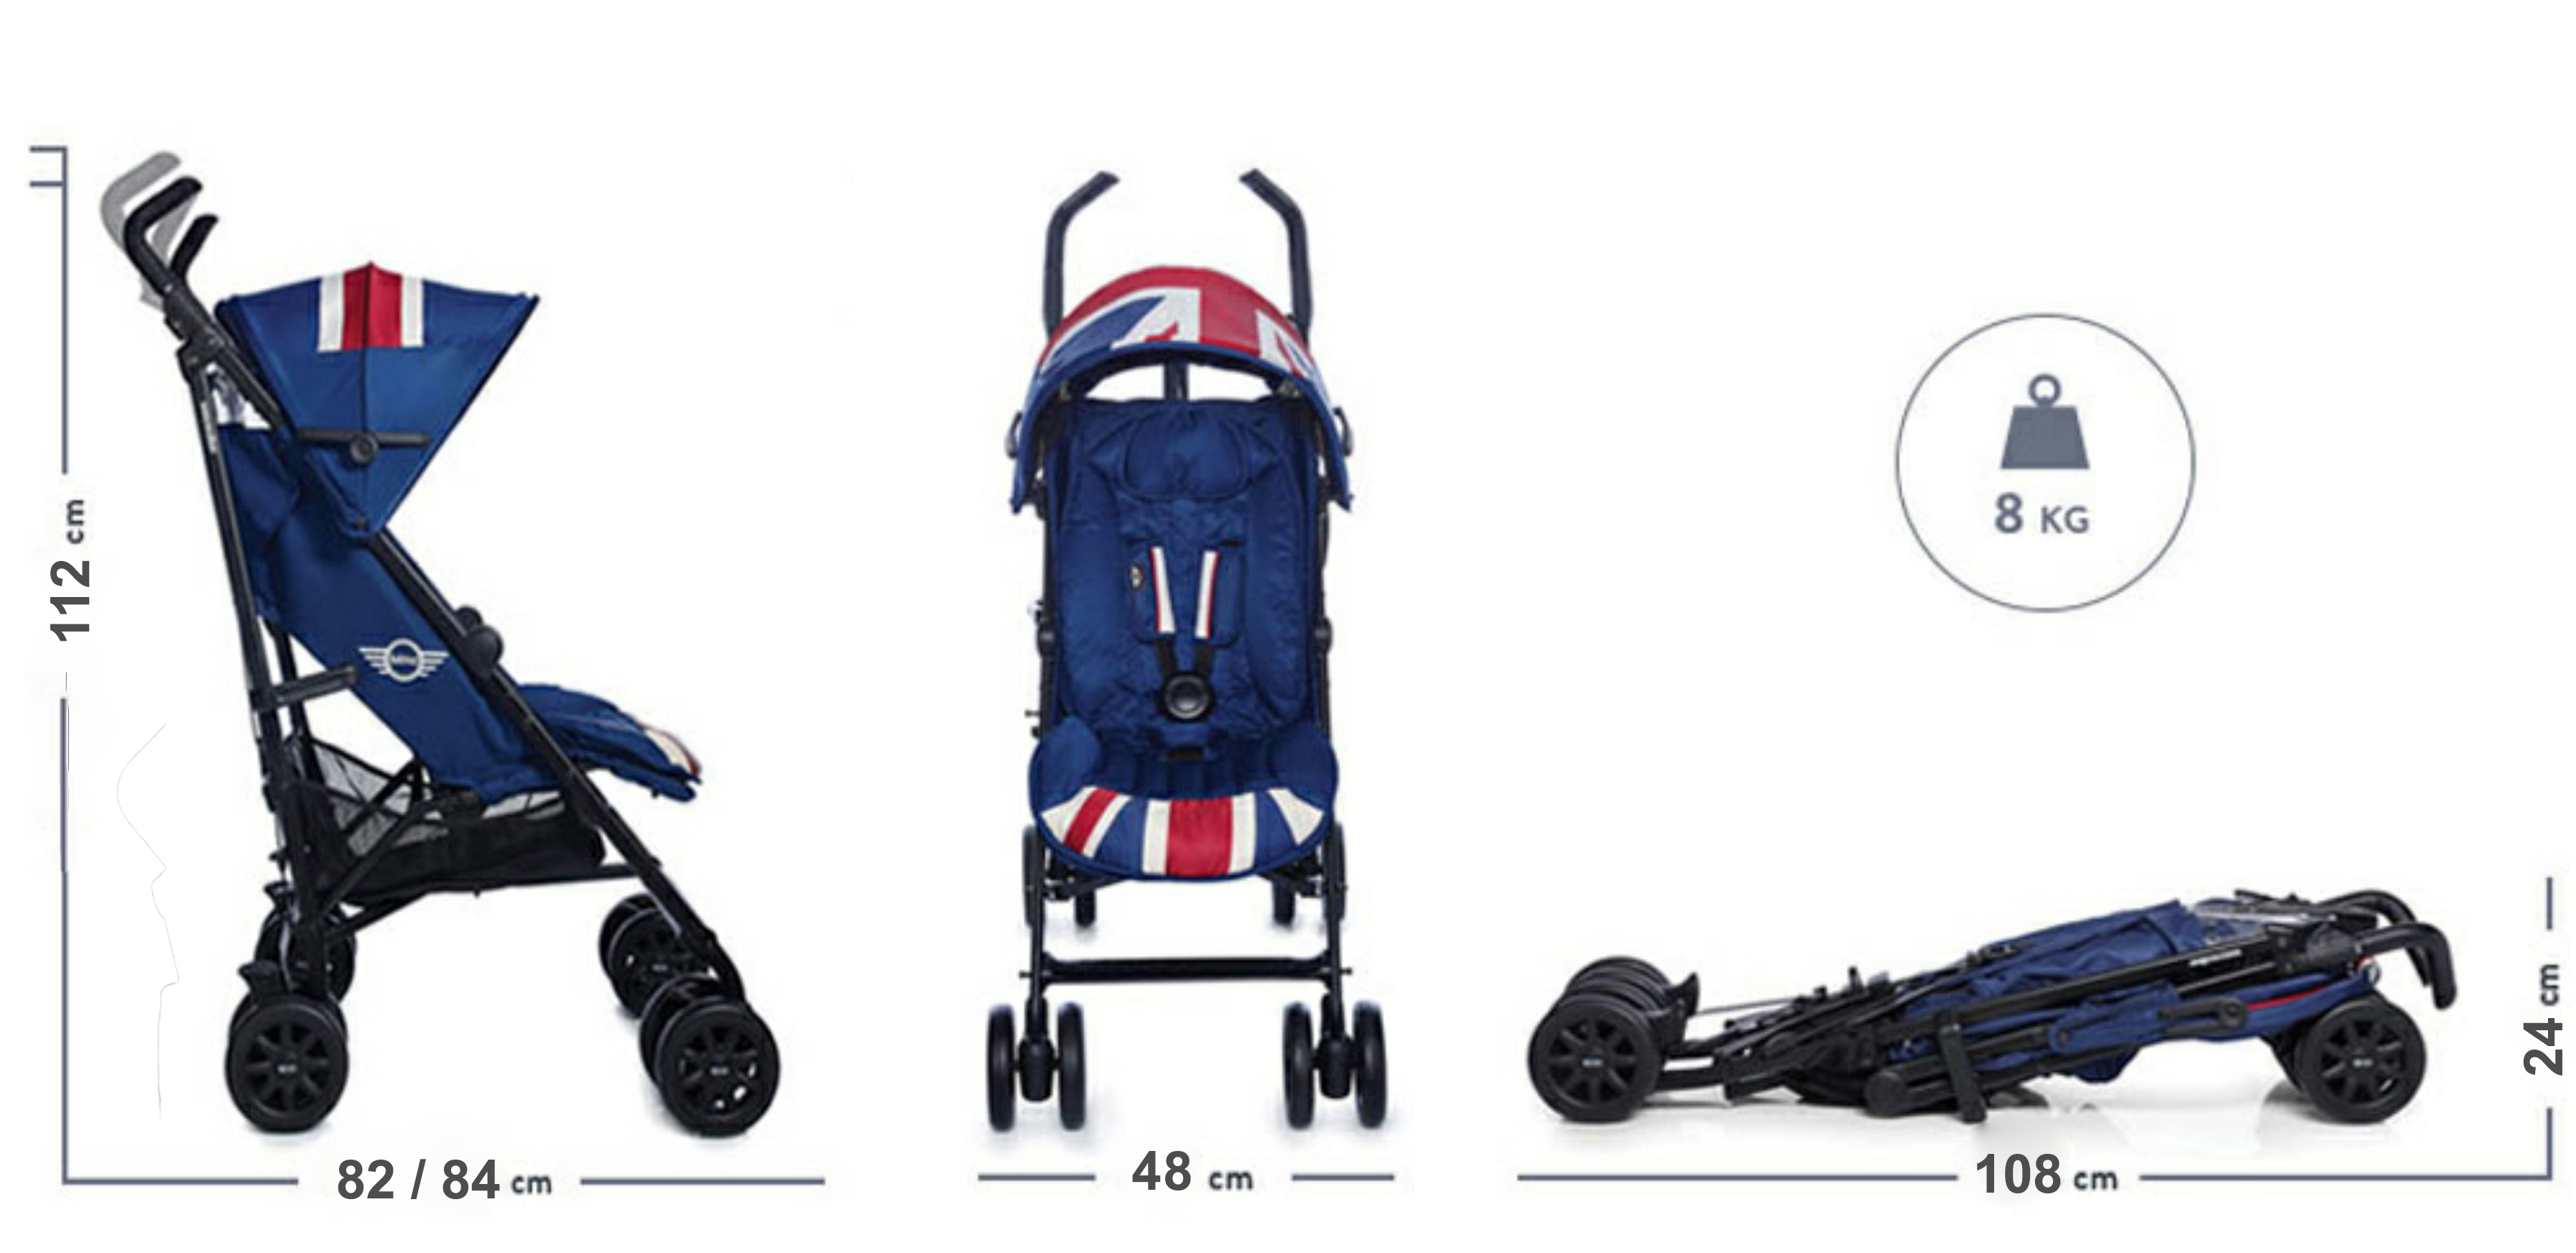 габариты Easywalker Mini Buggy XL